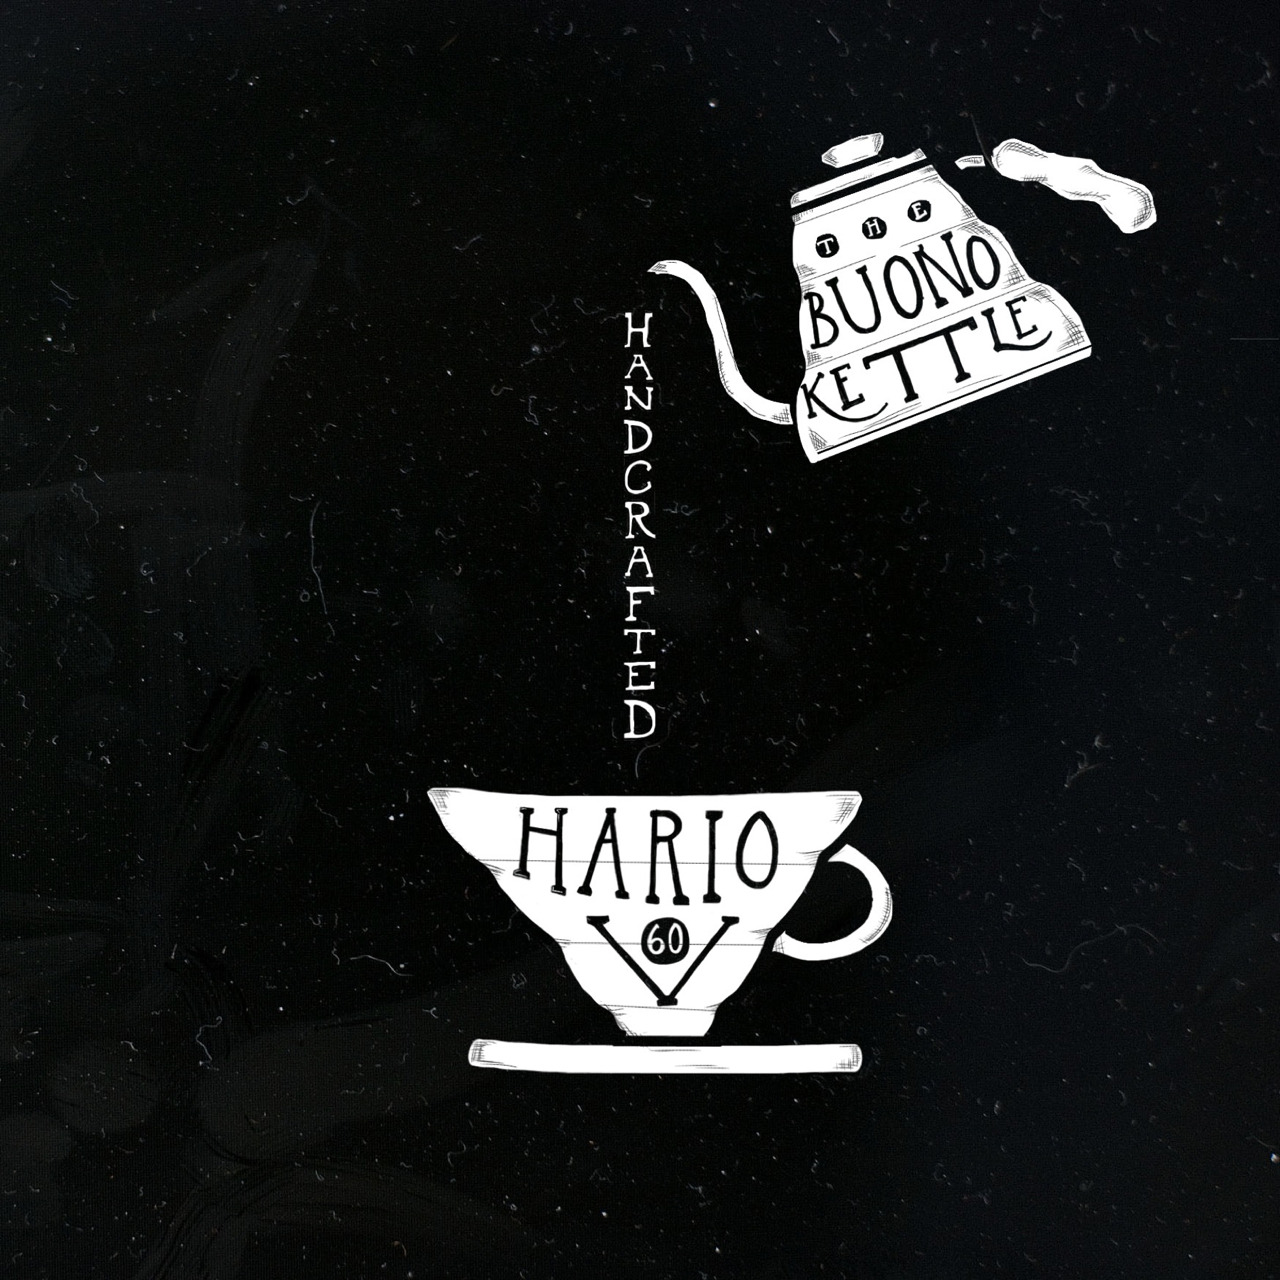 Handcraft your coffee with a Hario V60 and Buono kettle.